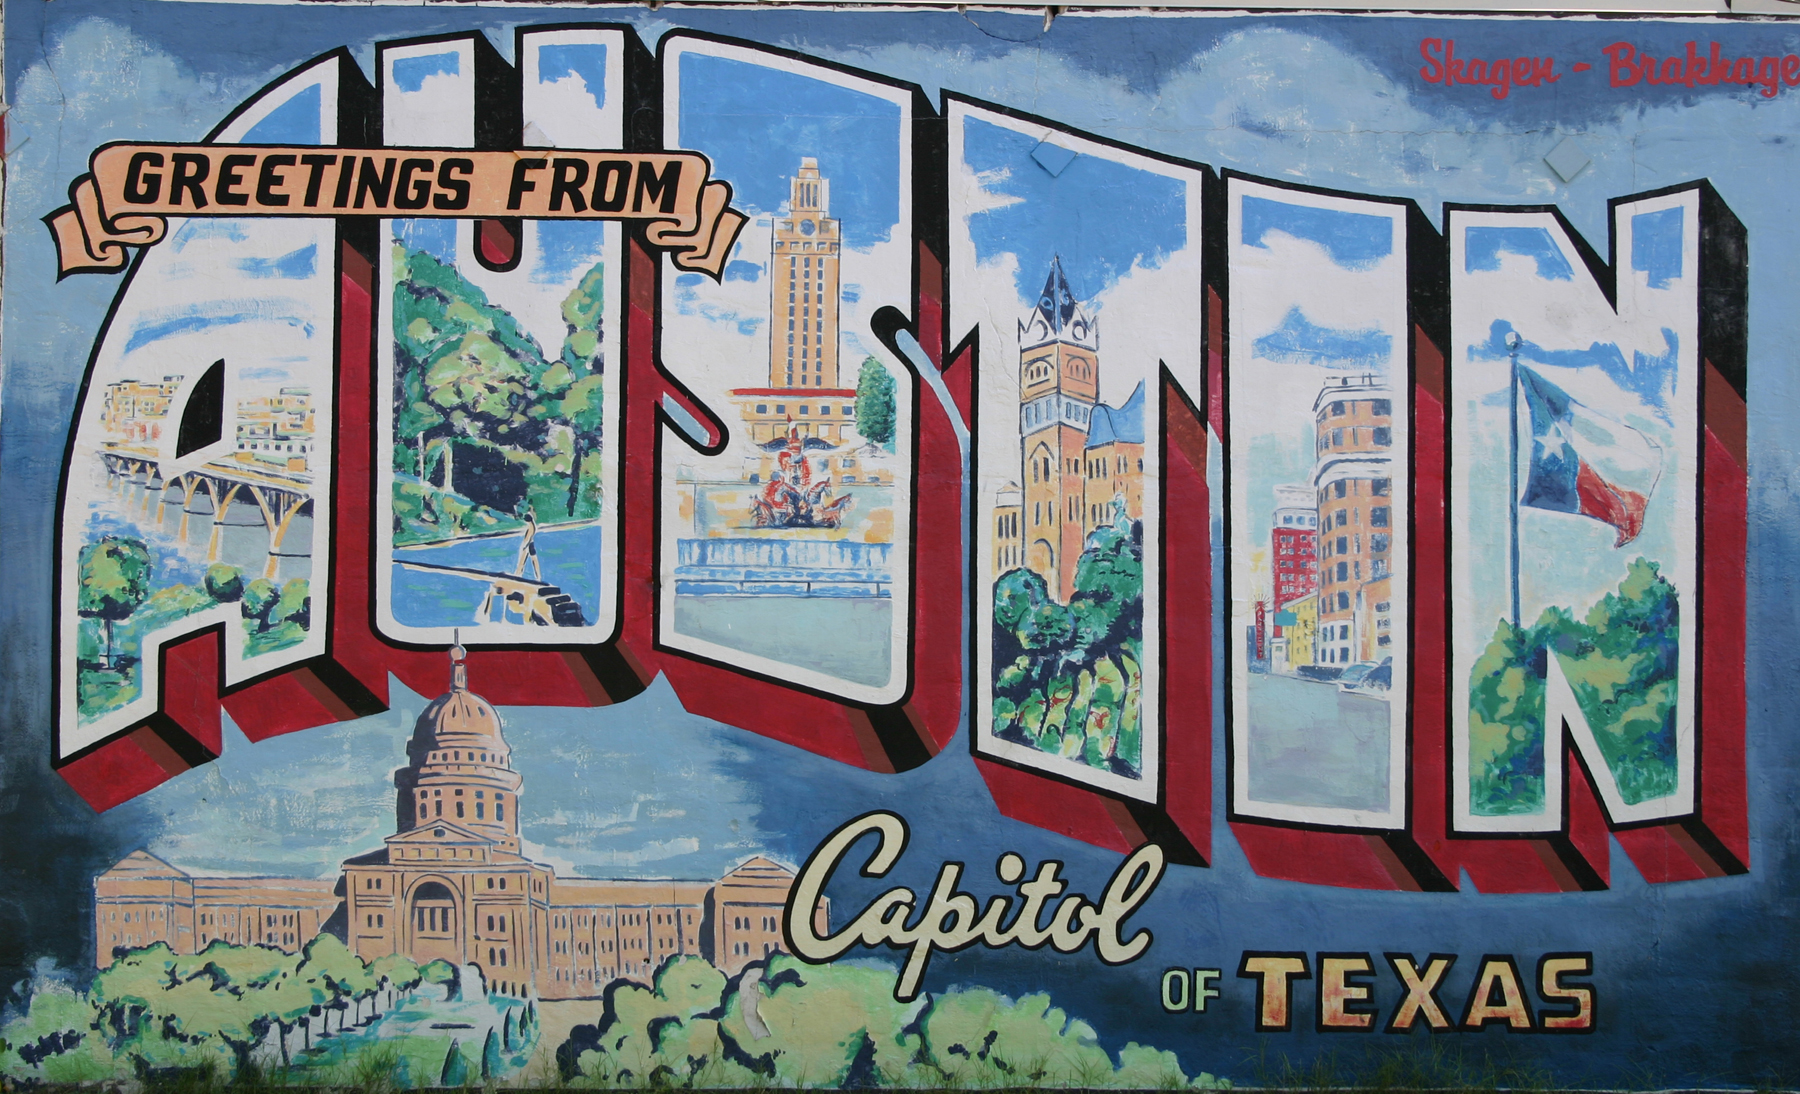 Image courtesy of Austin Convention and Visitors Bureau http://www.austintexas.org/